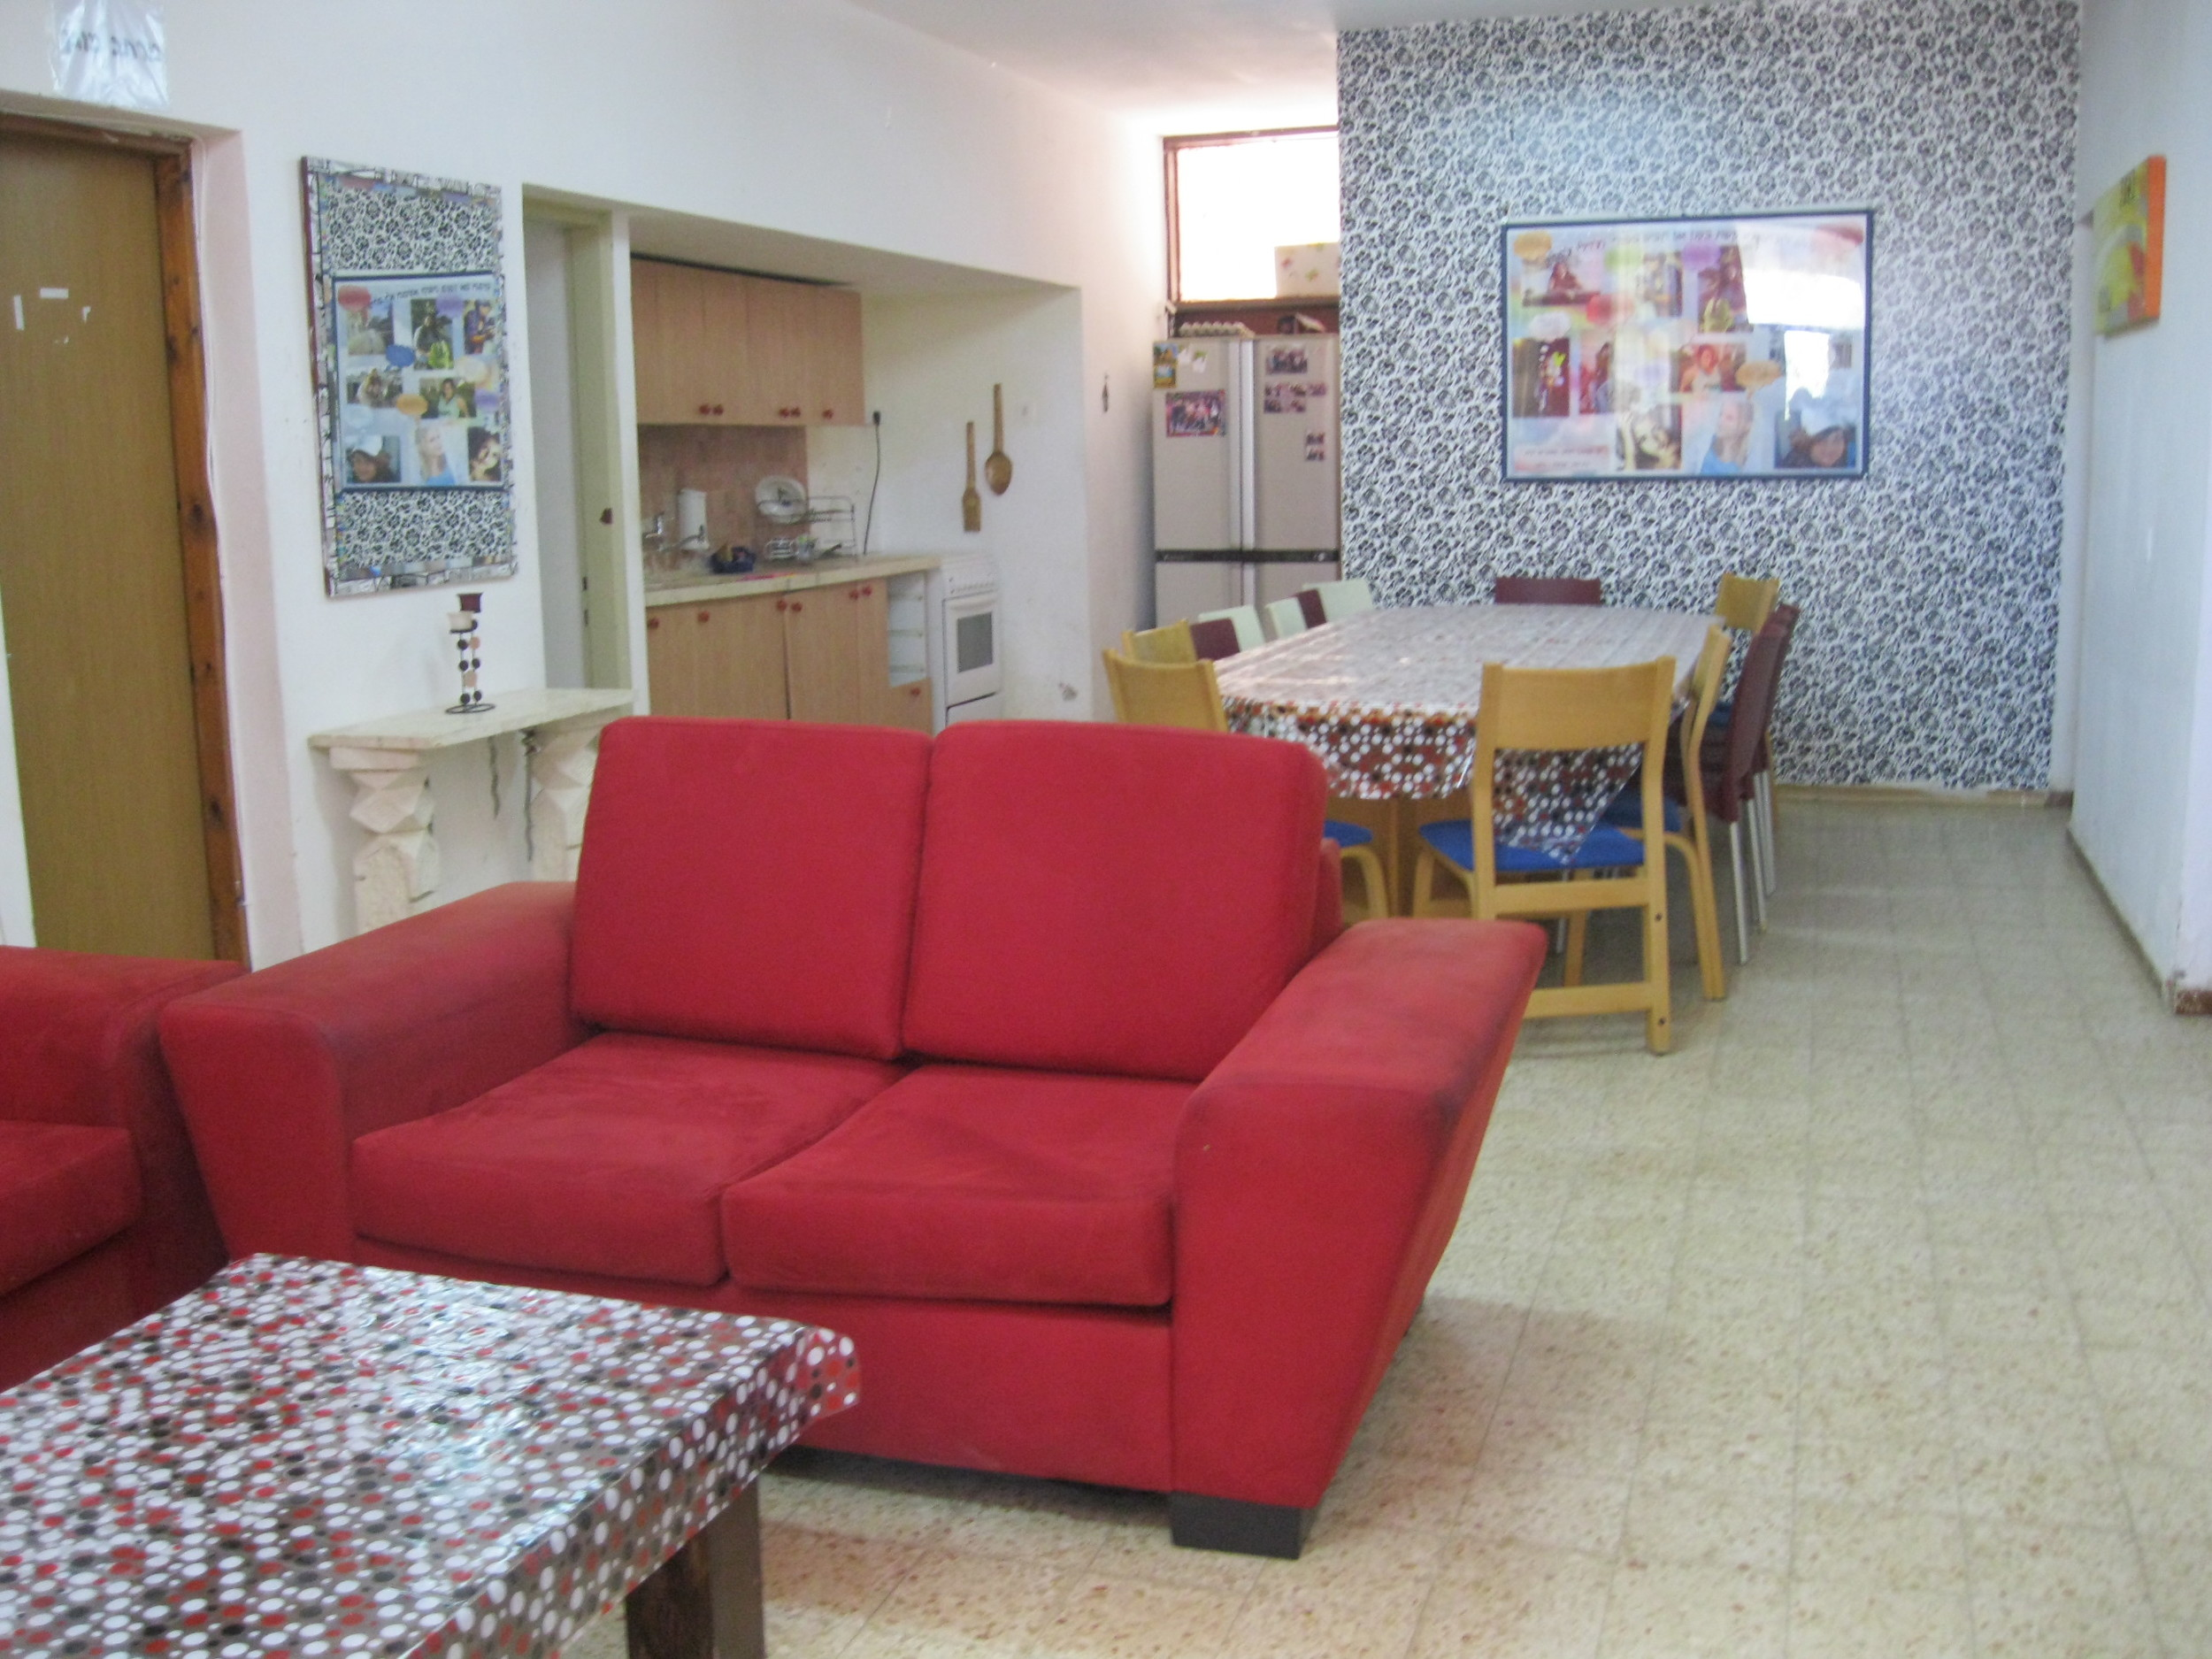 Donated furniture helped redecorate one of the dorms